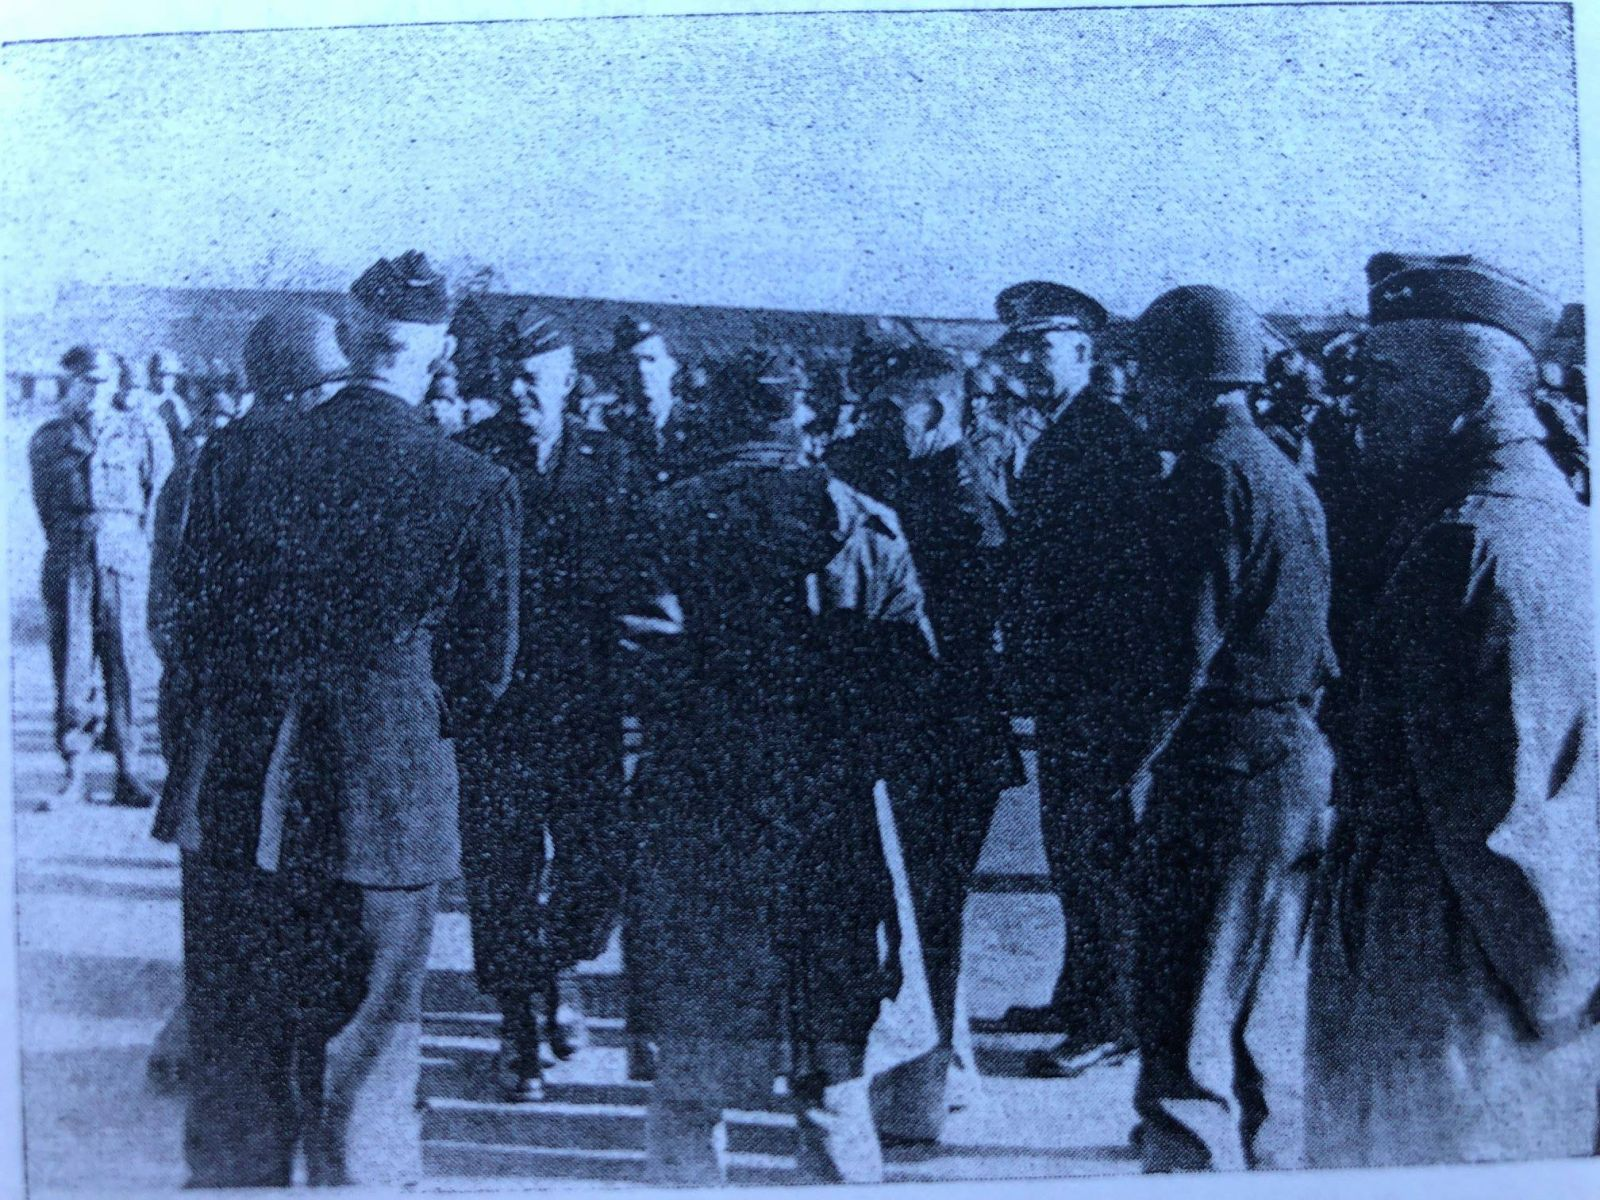 General Eisenhower visiting the 4ID in March 1944.